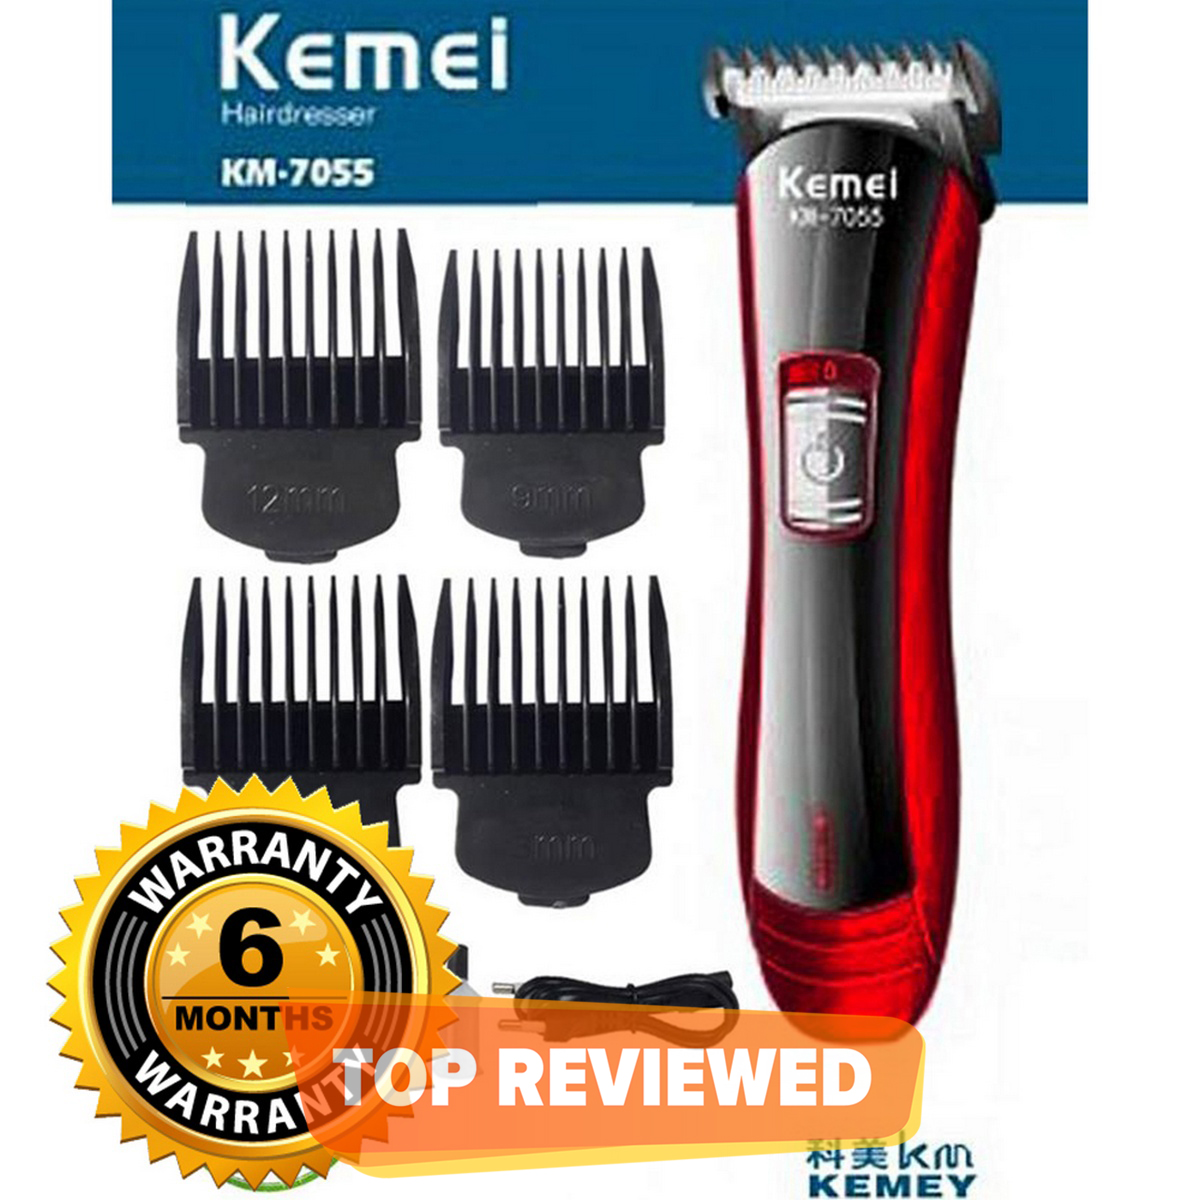 Shaving Machine - Hair Trimmer - Rechargeable Electric Hair Trimmer And Clipper With 6 Months Warranty.